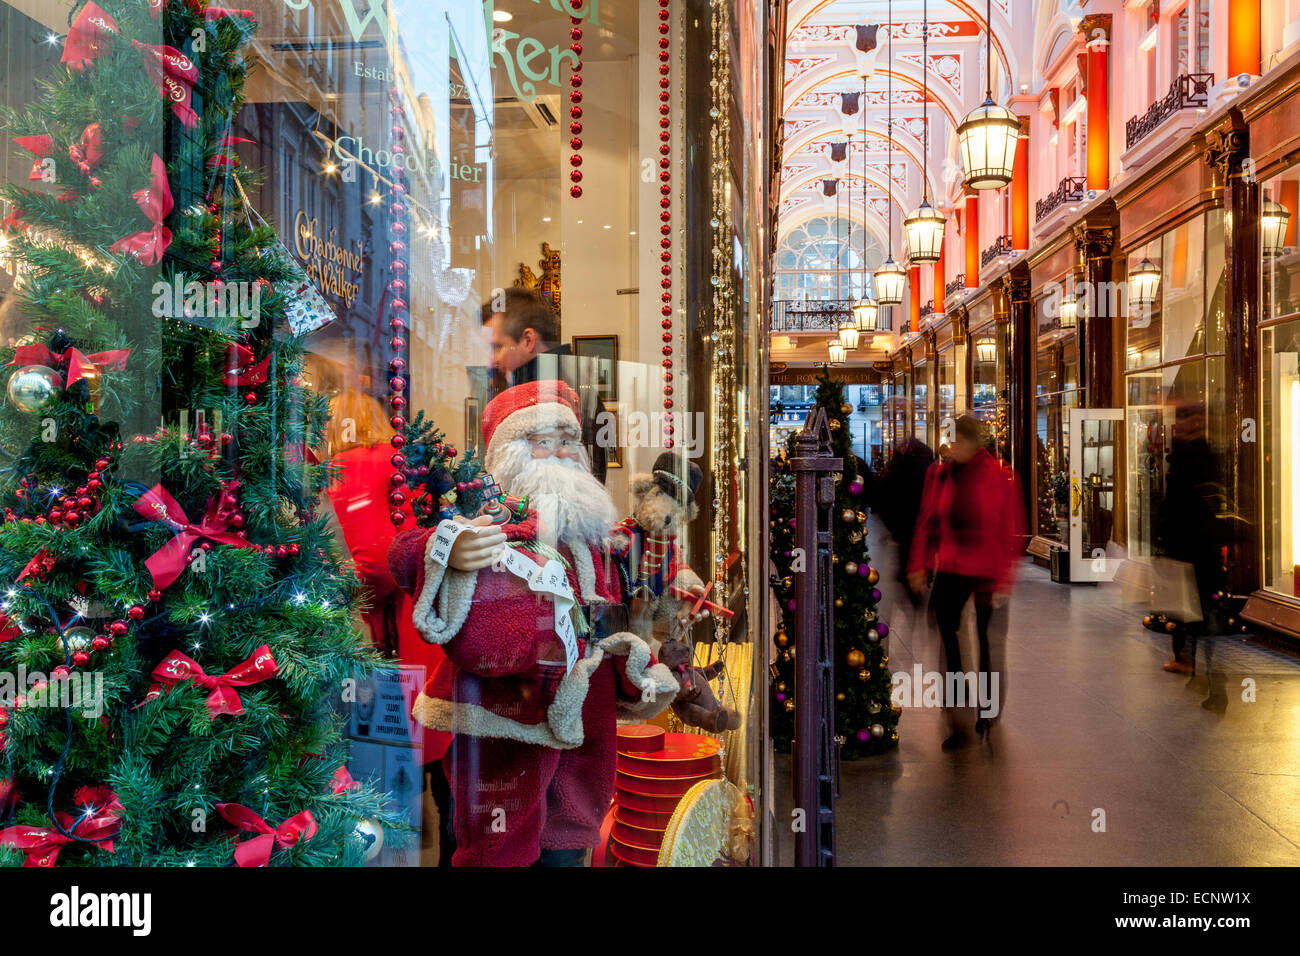 The Interior Of The Royal Arcade off Old Bond Street, London, England - Stock Image